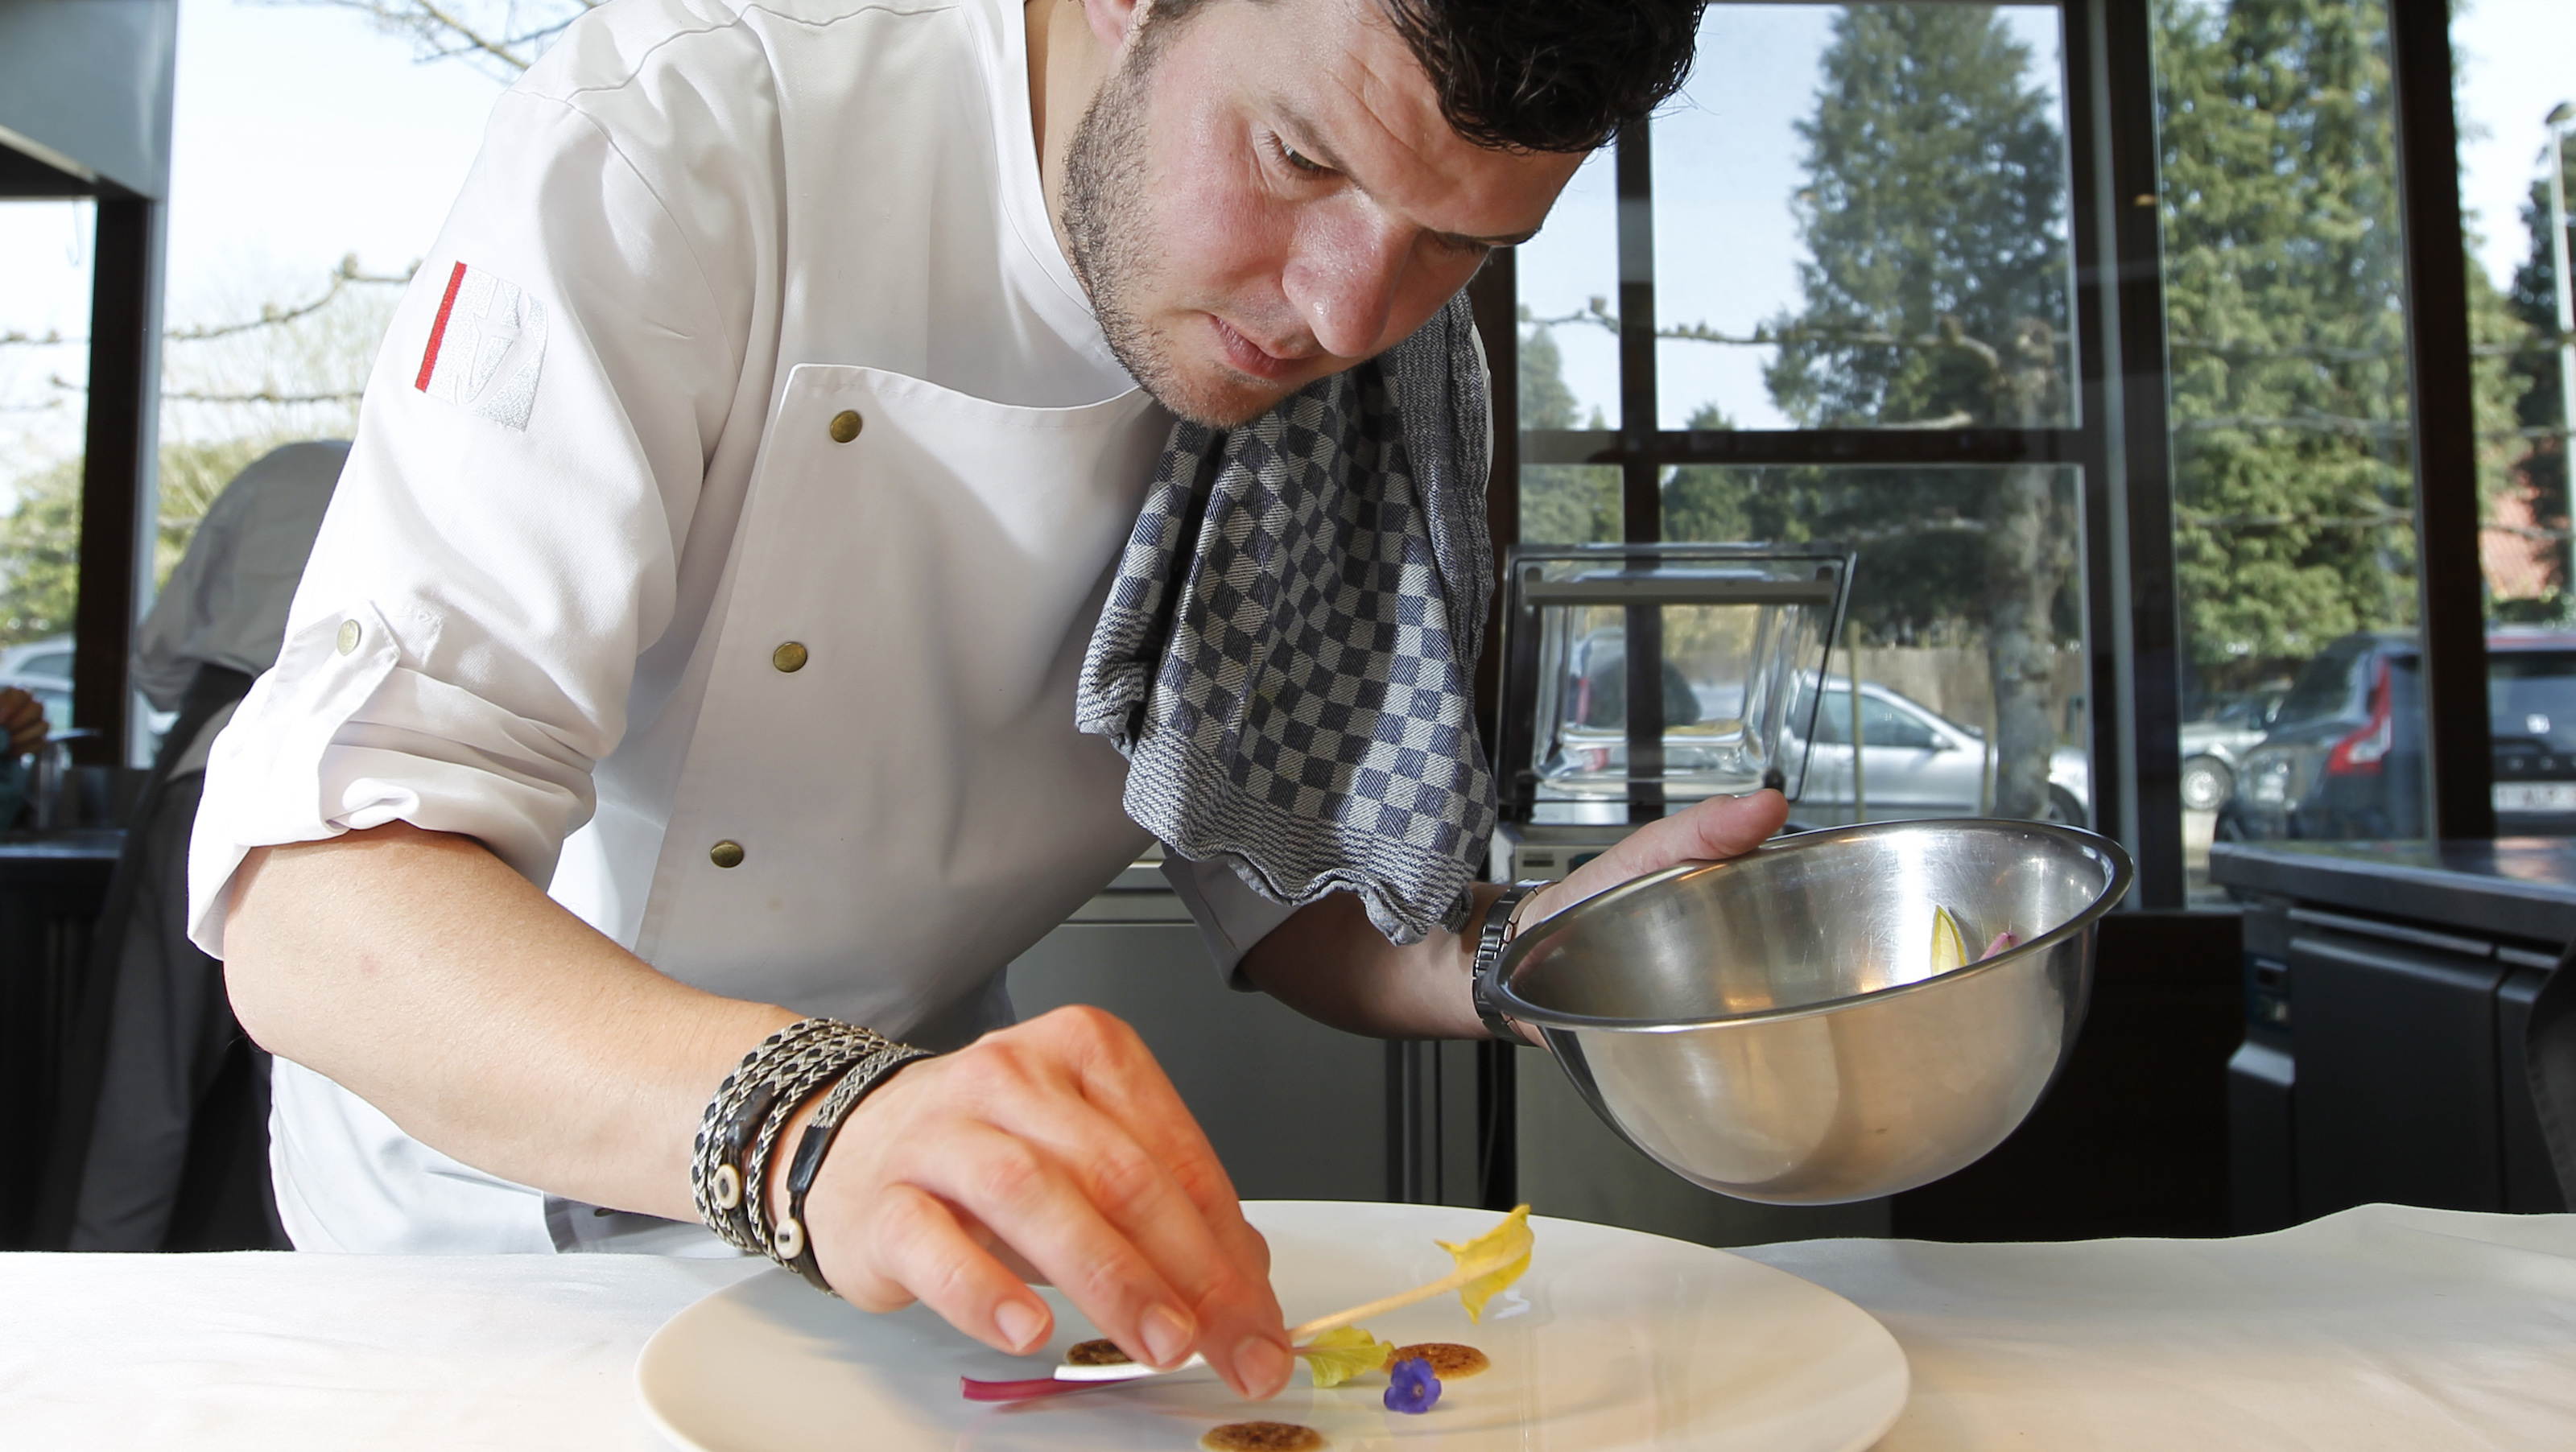 Belgian chef Gert De Mangeleer plates up a dish in the kitchen of Hertog Jan, the country's latest three-star Michelin restaurant, in Bruges March 29, 2012. De Mangeleer, 34, has taken Hertog Jan to the top of the culinary world with a cooking style based on fresh, local ingredients and perfection in preparation. He and Joachim Boudens, Hertog Jan's head sommelier, cultivate vegetables, flowers and herbs for the restaurant by themselves on a farm which they purchased two years ago.  Picture taken March 29, 2012. To match story BELGIUM-FOOD/  REUTERS/Francois Lenoir (BELGIUM - Tags: AGRICULTURE FOOD SOCIETY) - RTR30K14